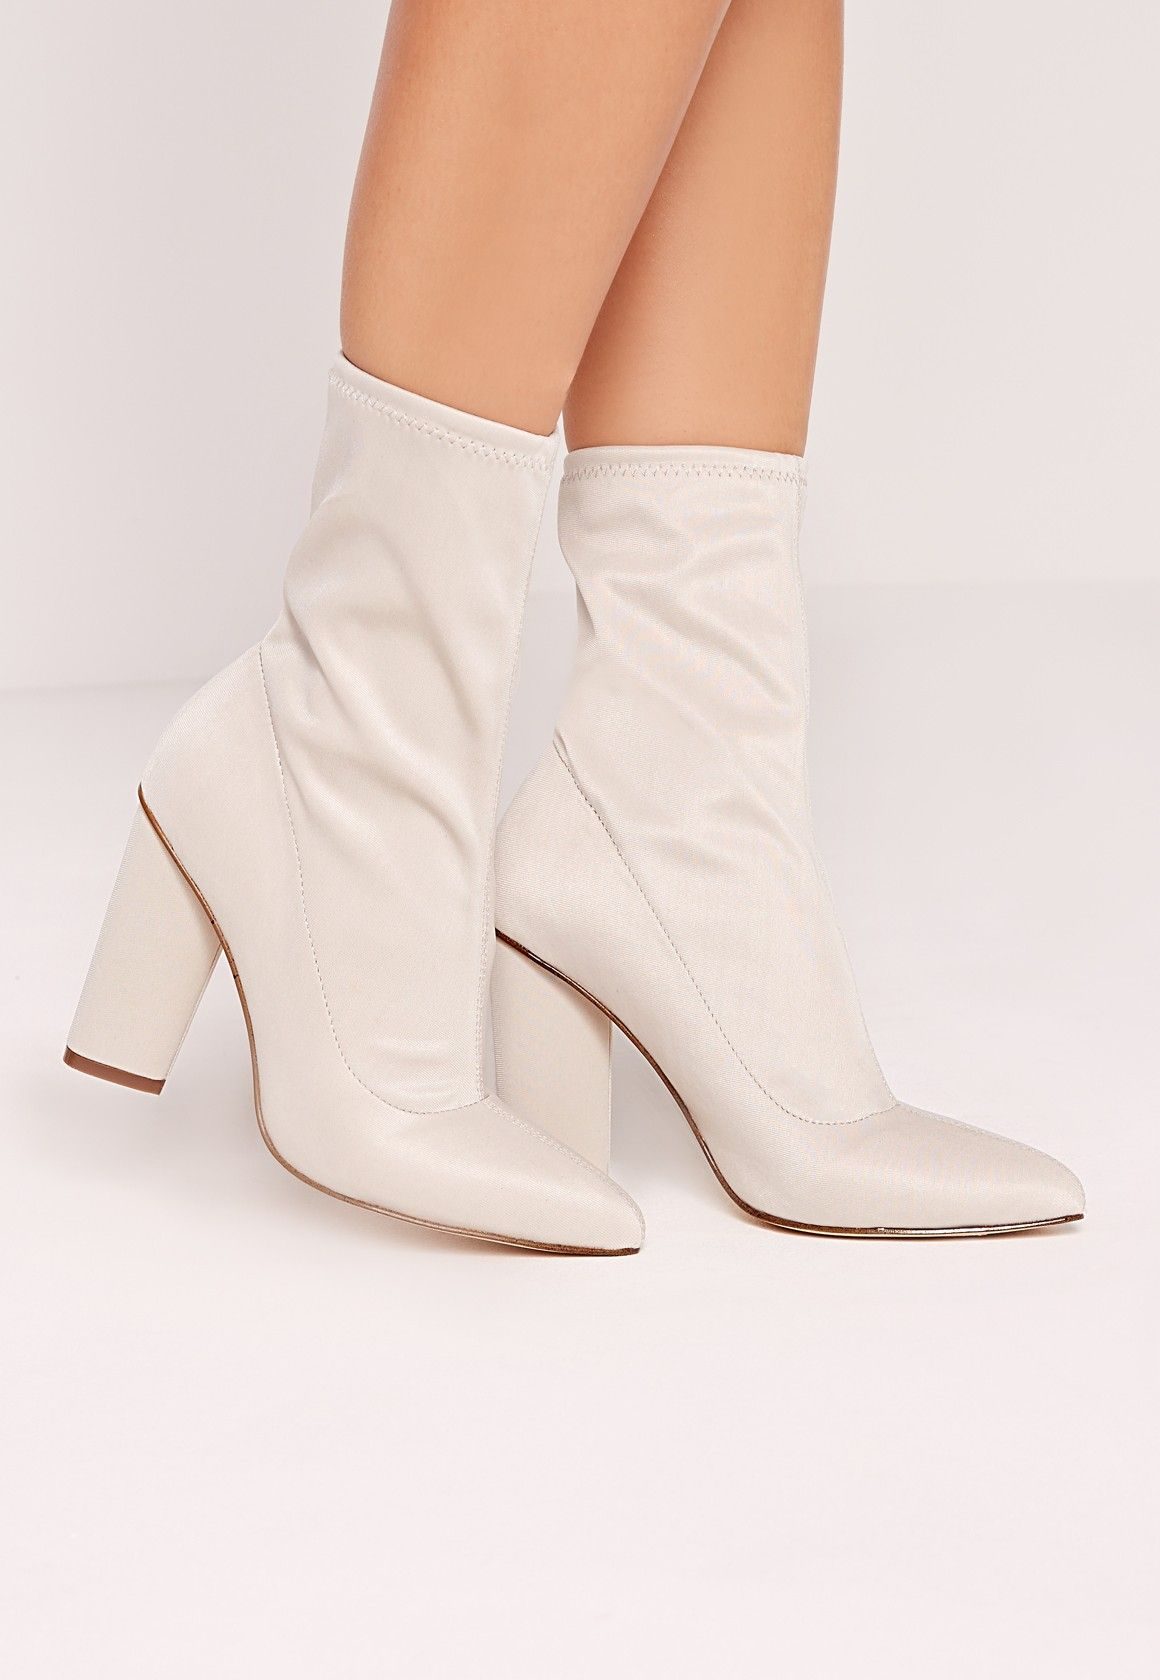 7f553de2242 Missguided - Pointed Toe Neoprene Heeled Ankle Boots Cream ...